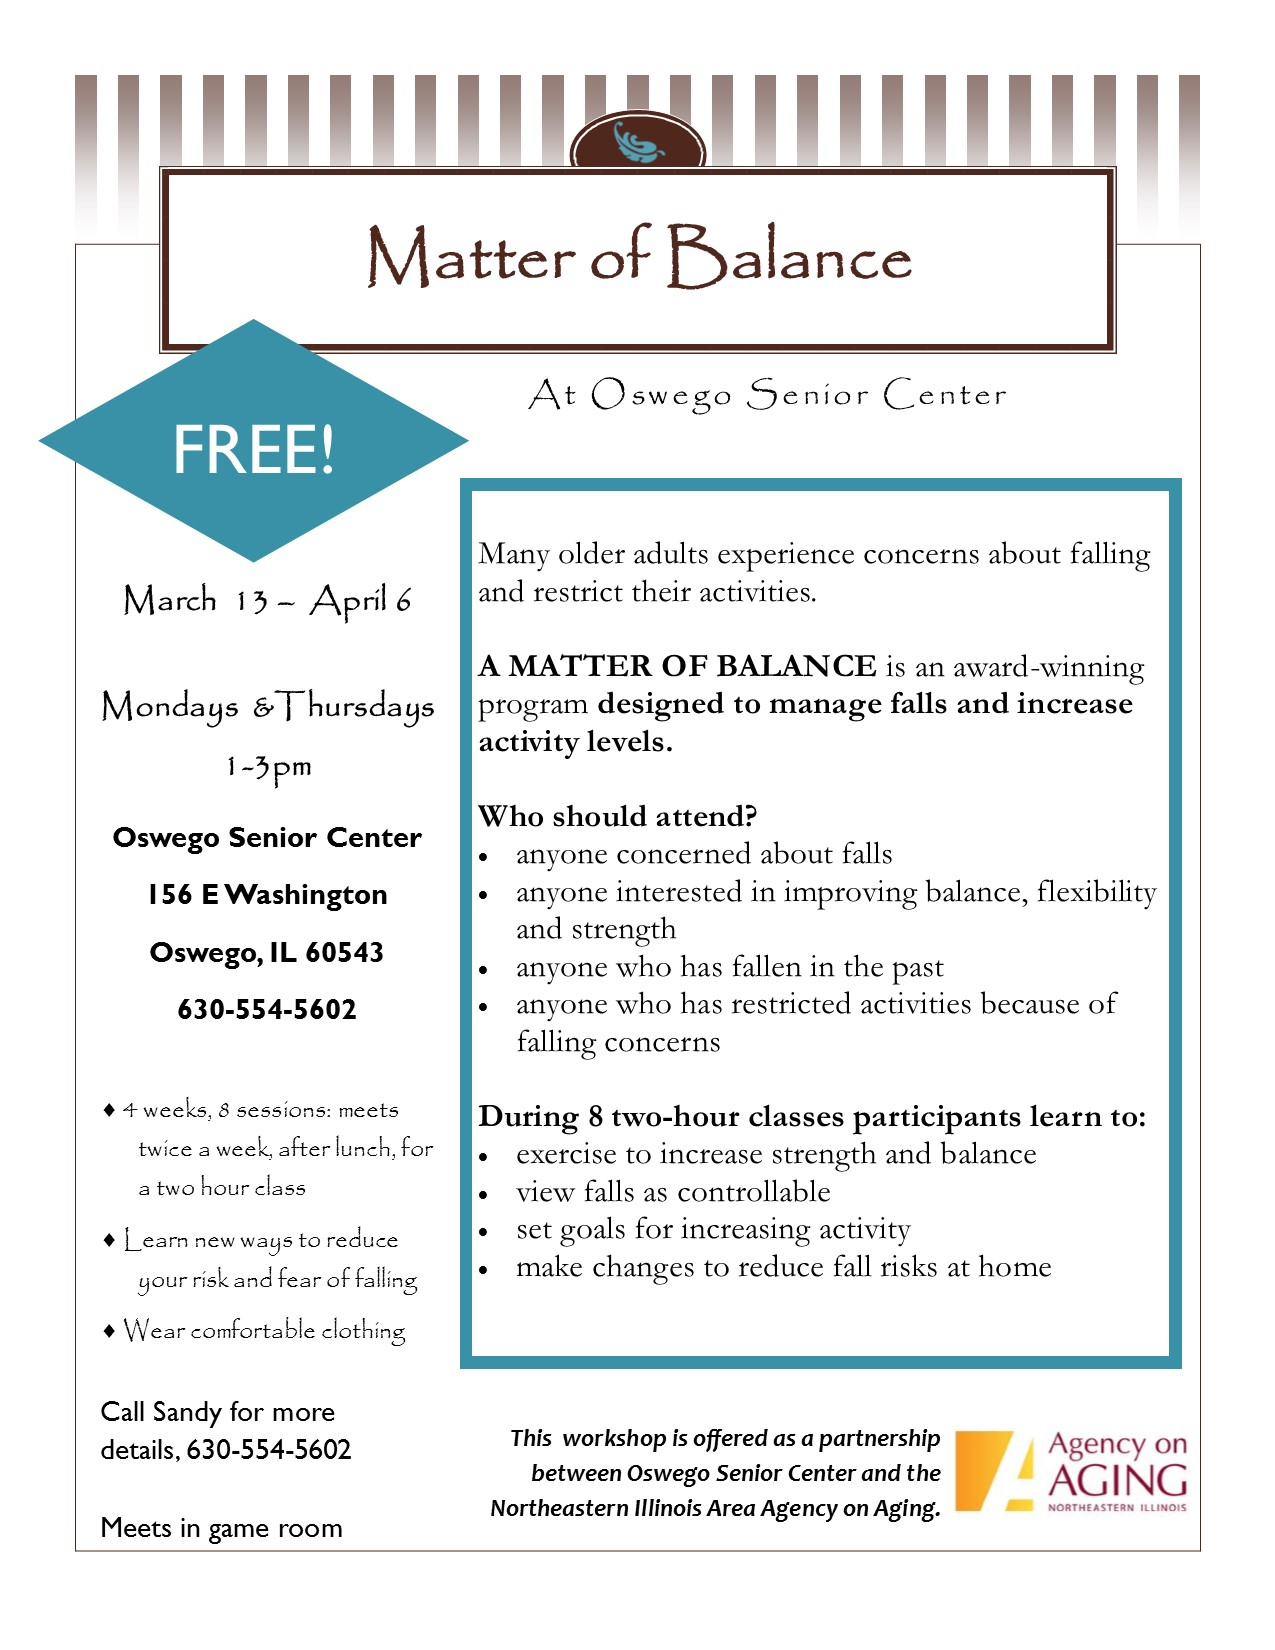 Matter 20of 20balance 20march 2013  20april 206 202017